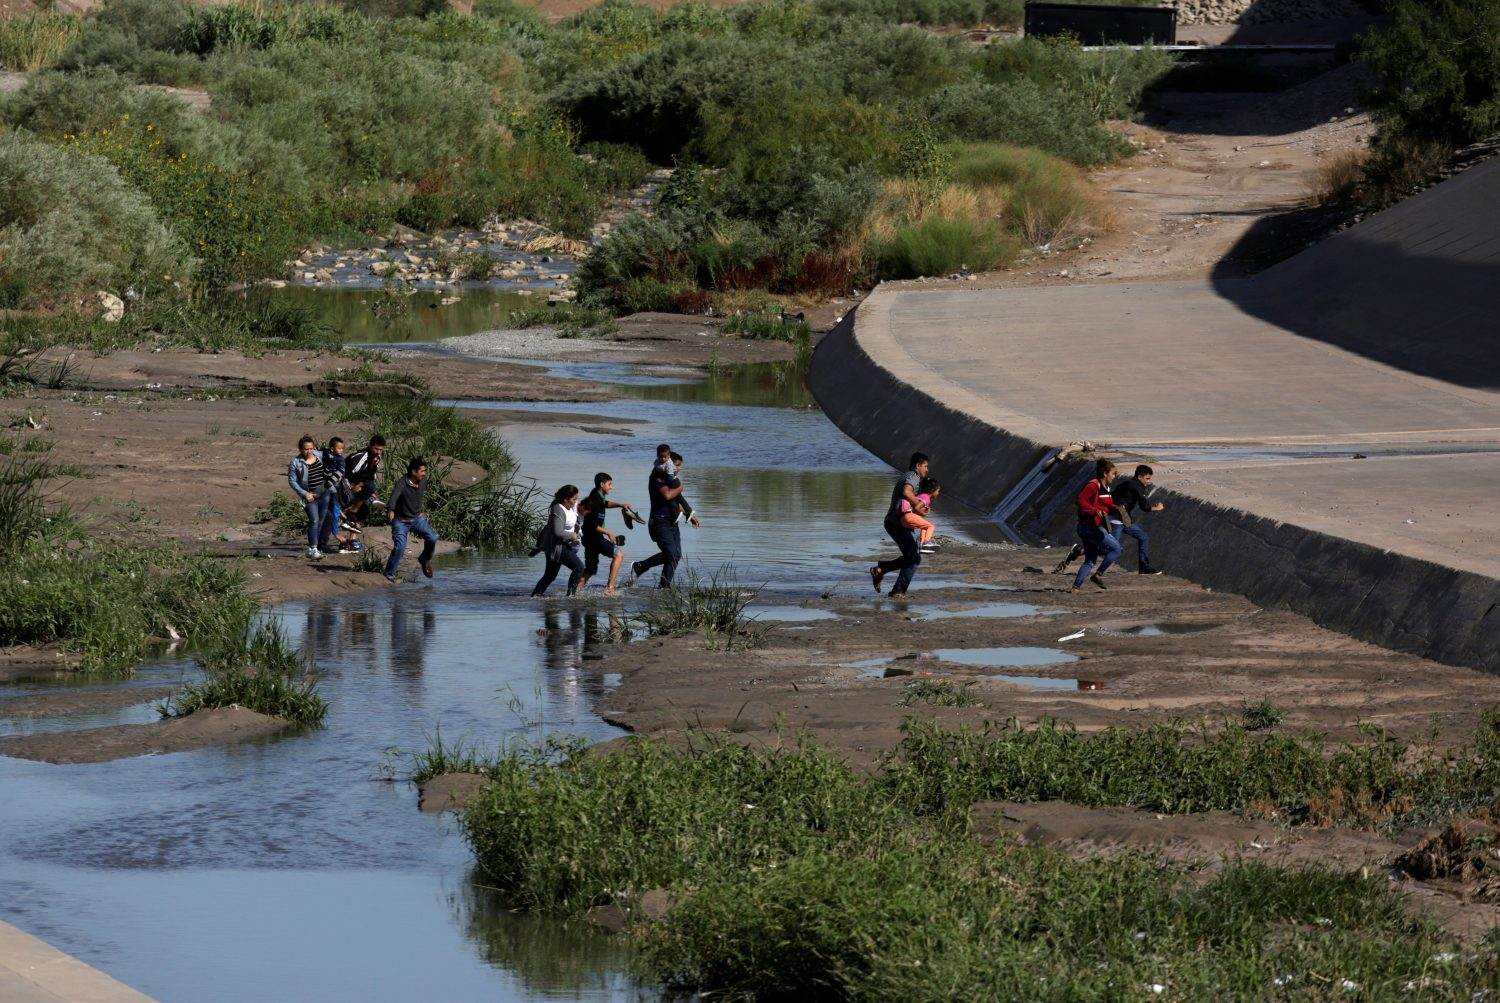 Migrants cross the Rio Bravo to enter illegally into the United States, to turn themselves in to request asylum, as seen from Ciudad Juarez, Mexico July 12, 2019. REUTERS/Daniel Becerr